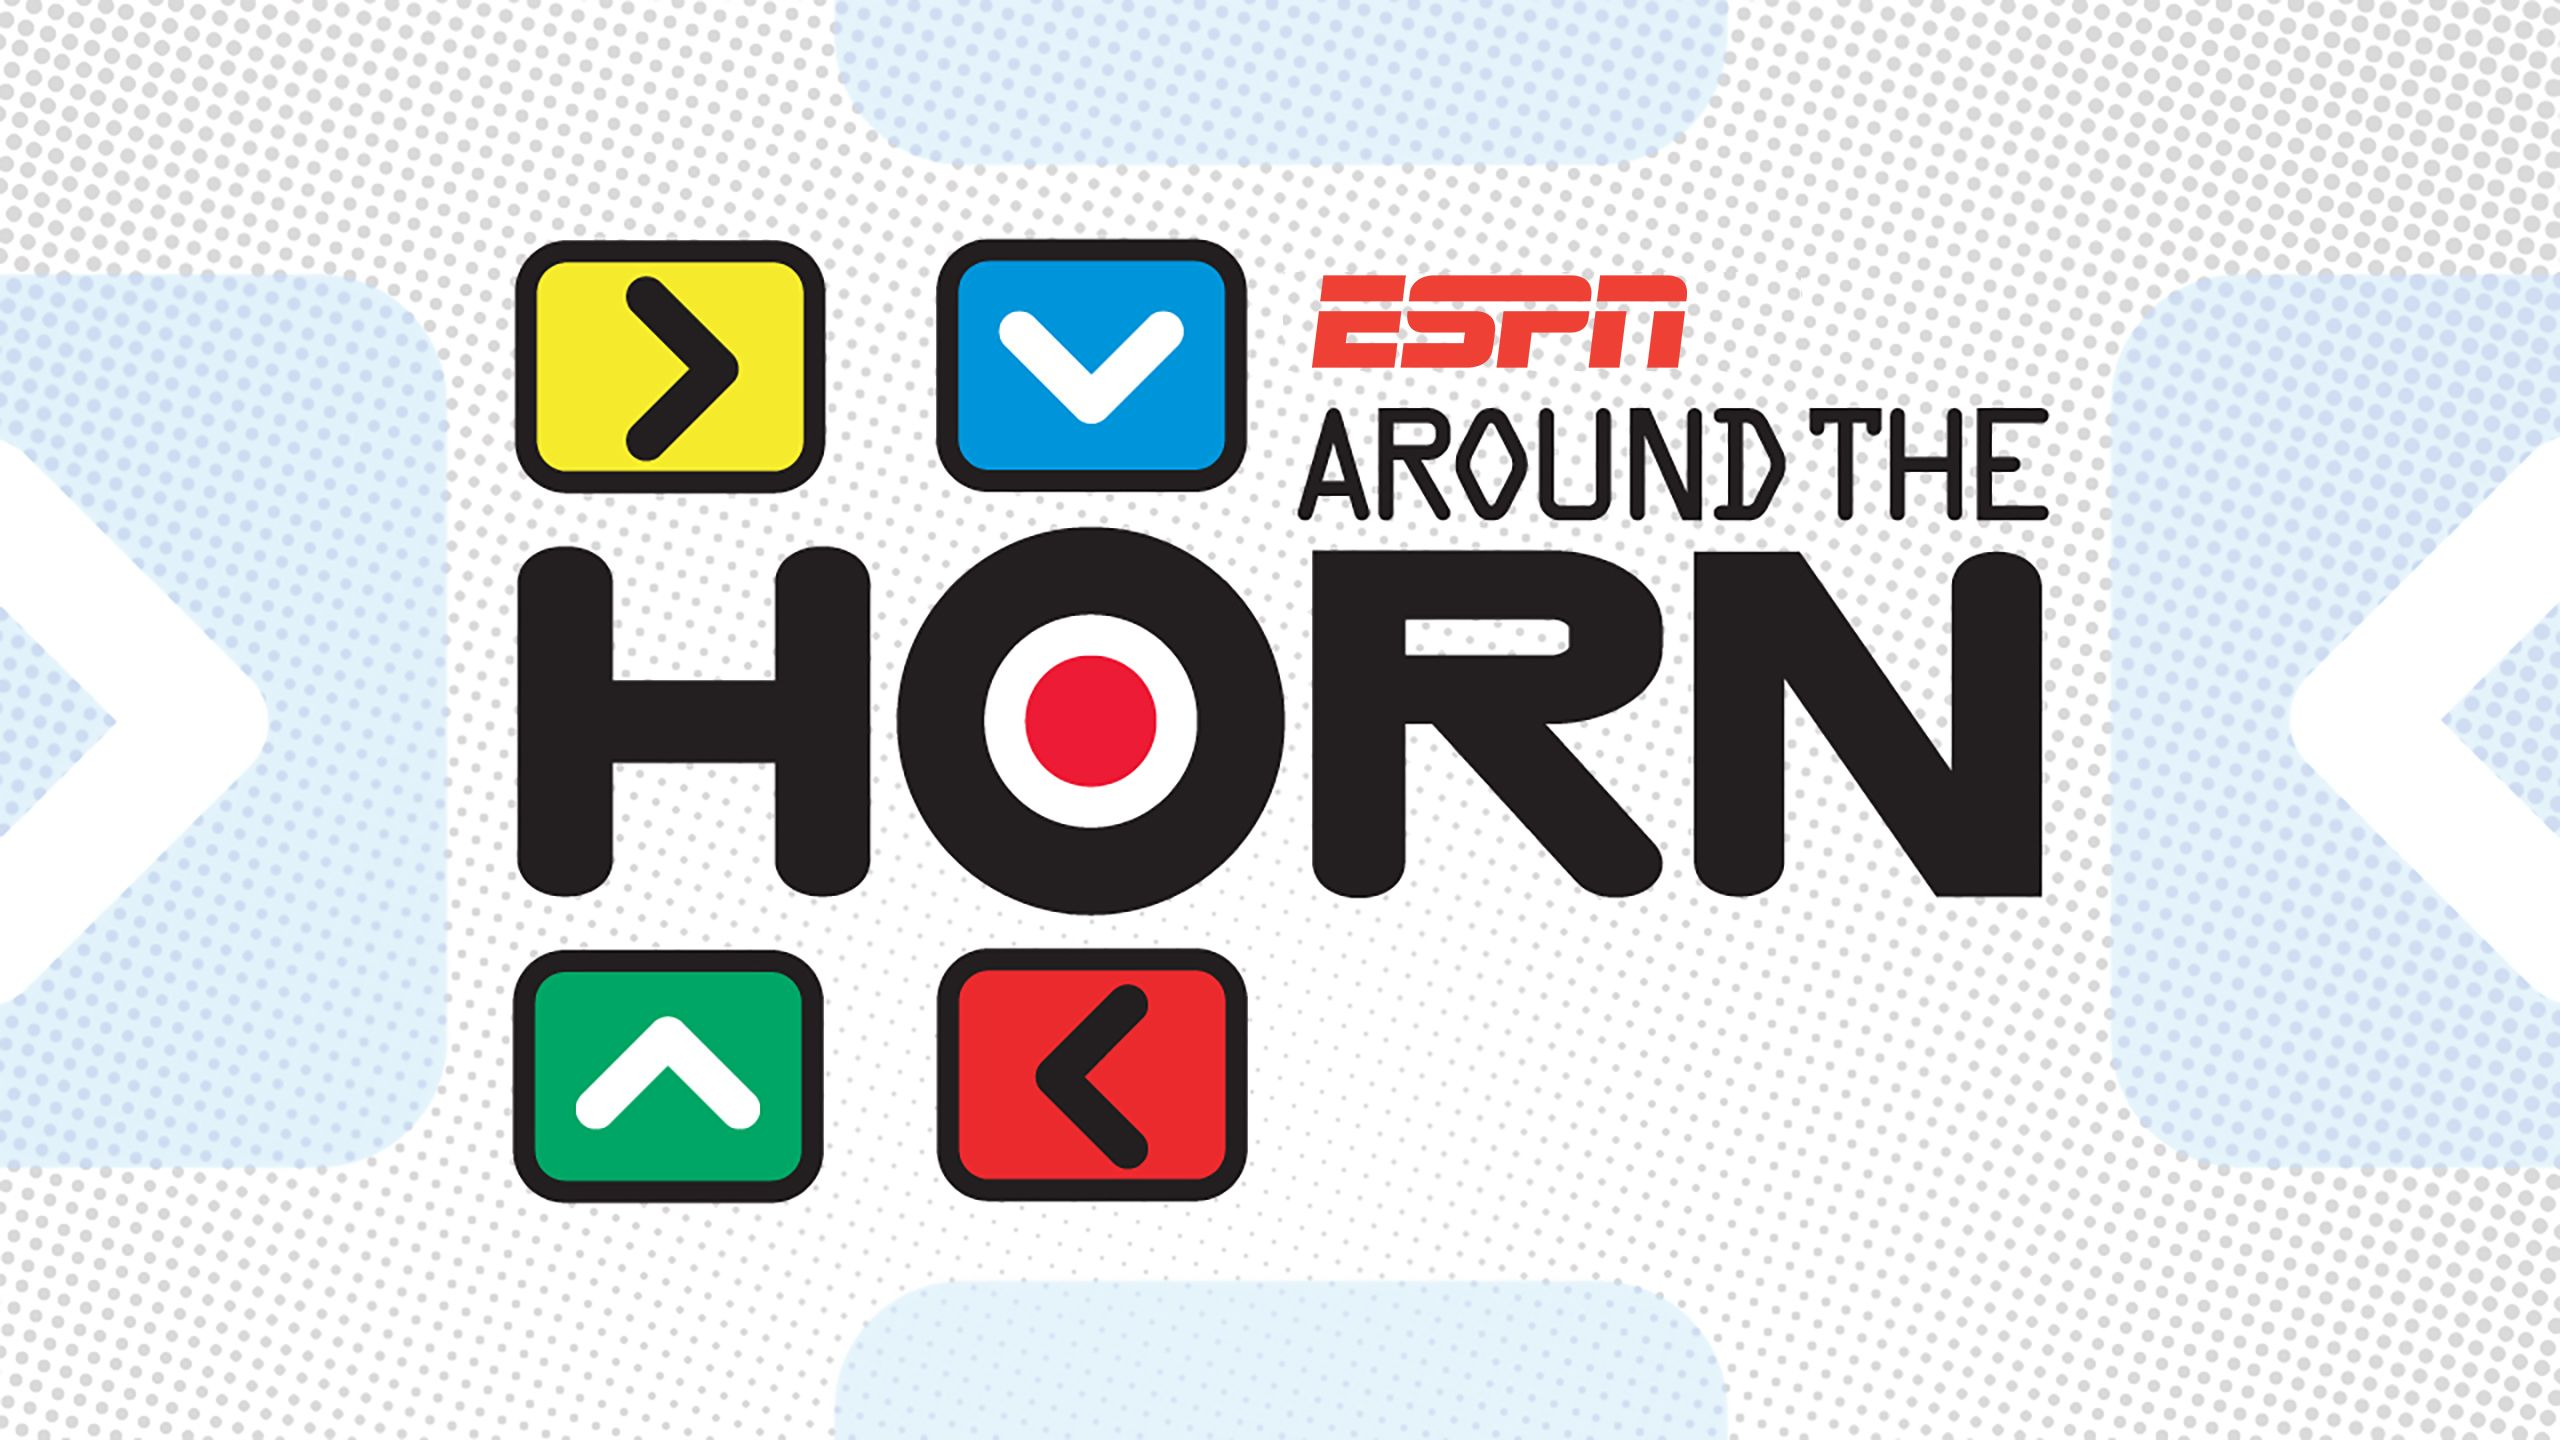 Wed, 10/18 - Around The Horn